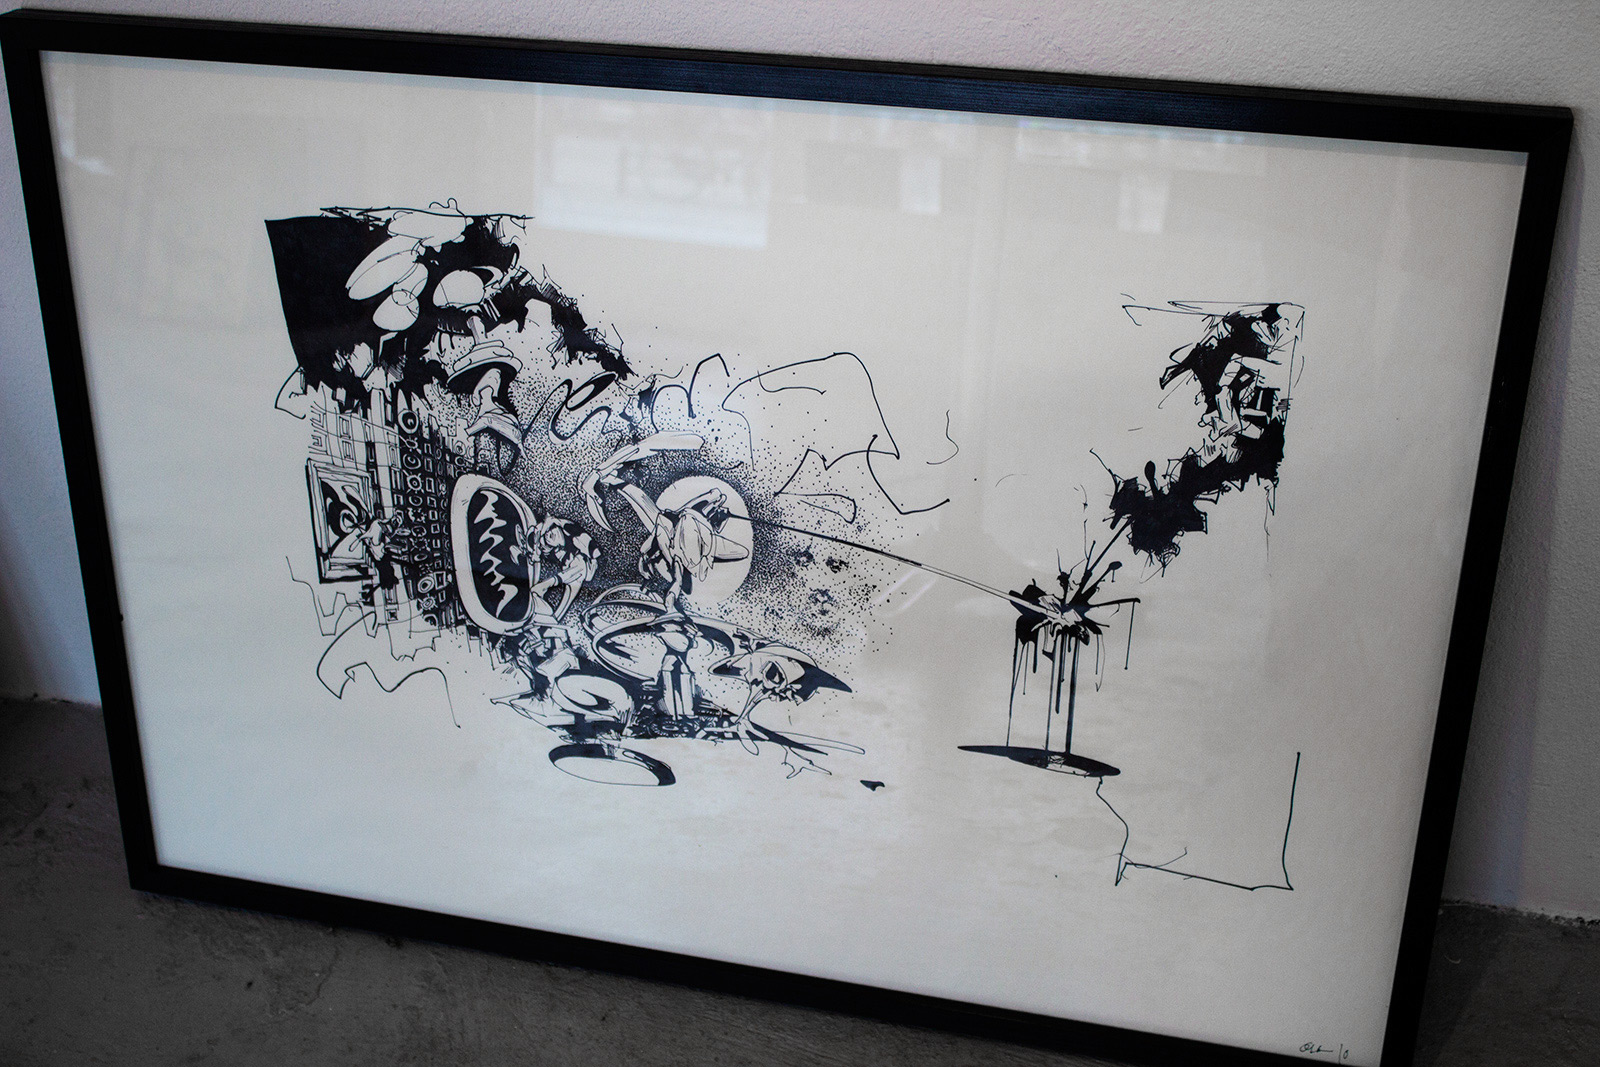 drawings, expressive, illustrative, monochrome, pop, architecture, science, black, white, ink, paper, marker, abstract-forms, architectural, black-and-white, buildings, contemporary-art, danish, decorative, design, graffiti, horizontal, interior, interior-design, male, modern, modern-art, nordic, scandinavien, sketch, street-art, urban, wild, Buy original high quality art. Paintings, drawings, limited edition prints & posters by talented artists.